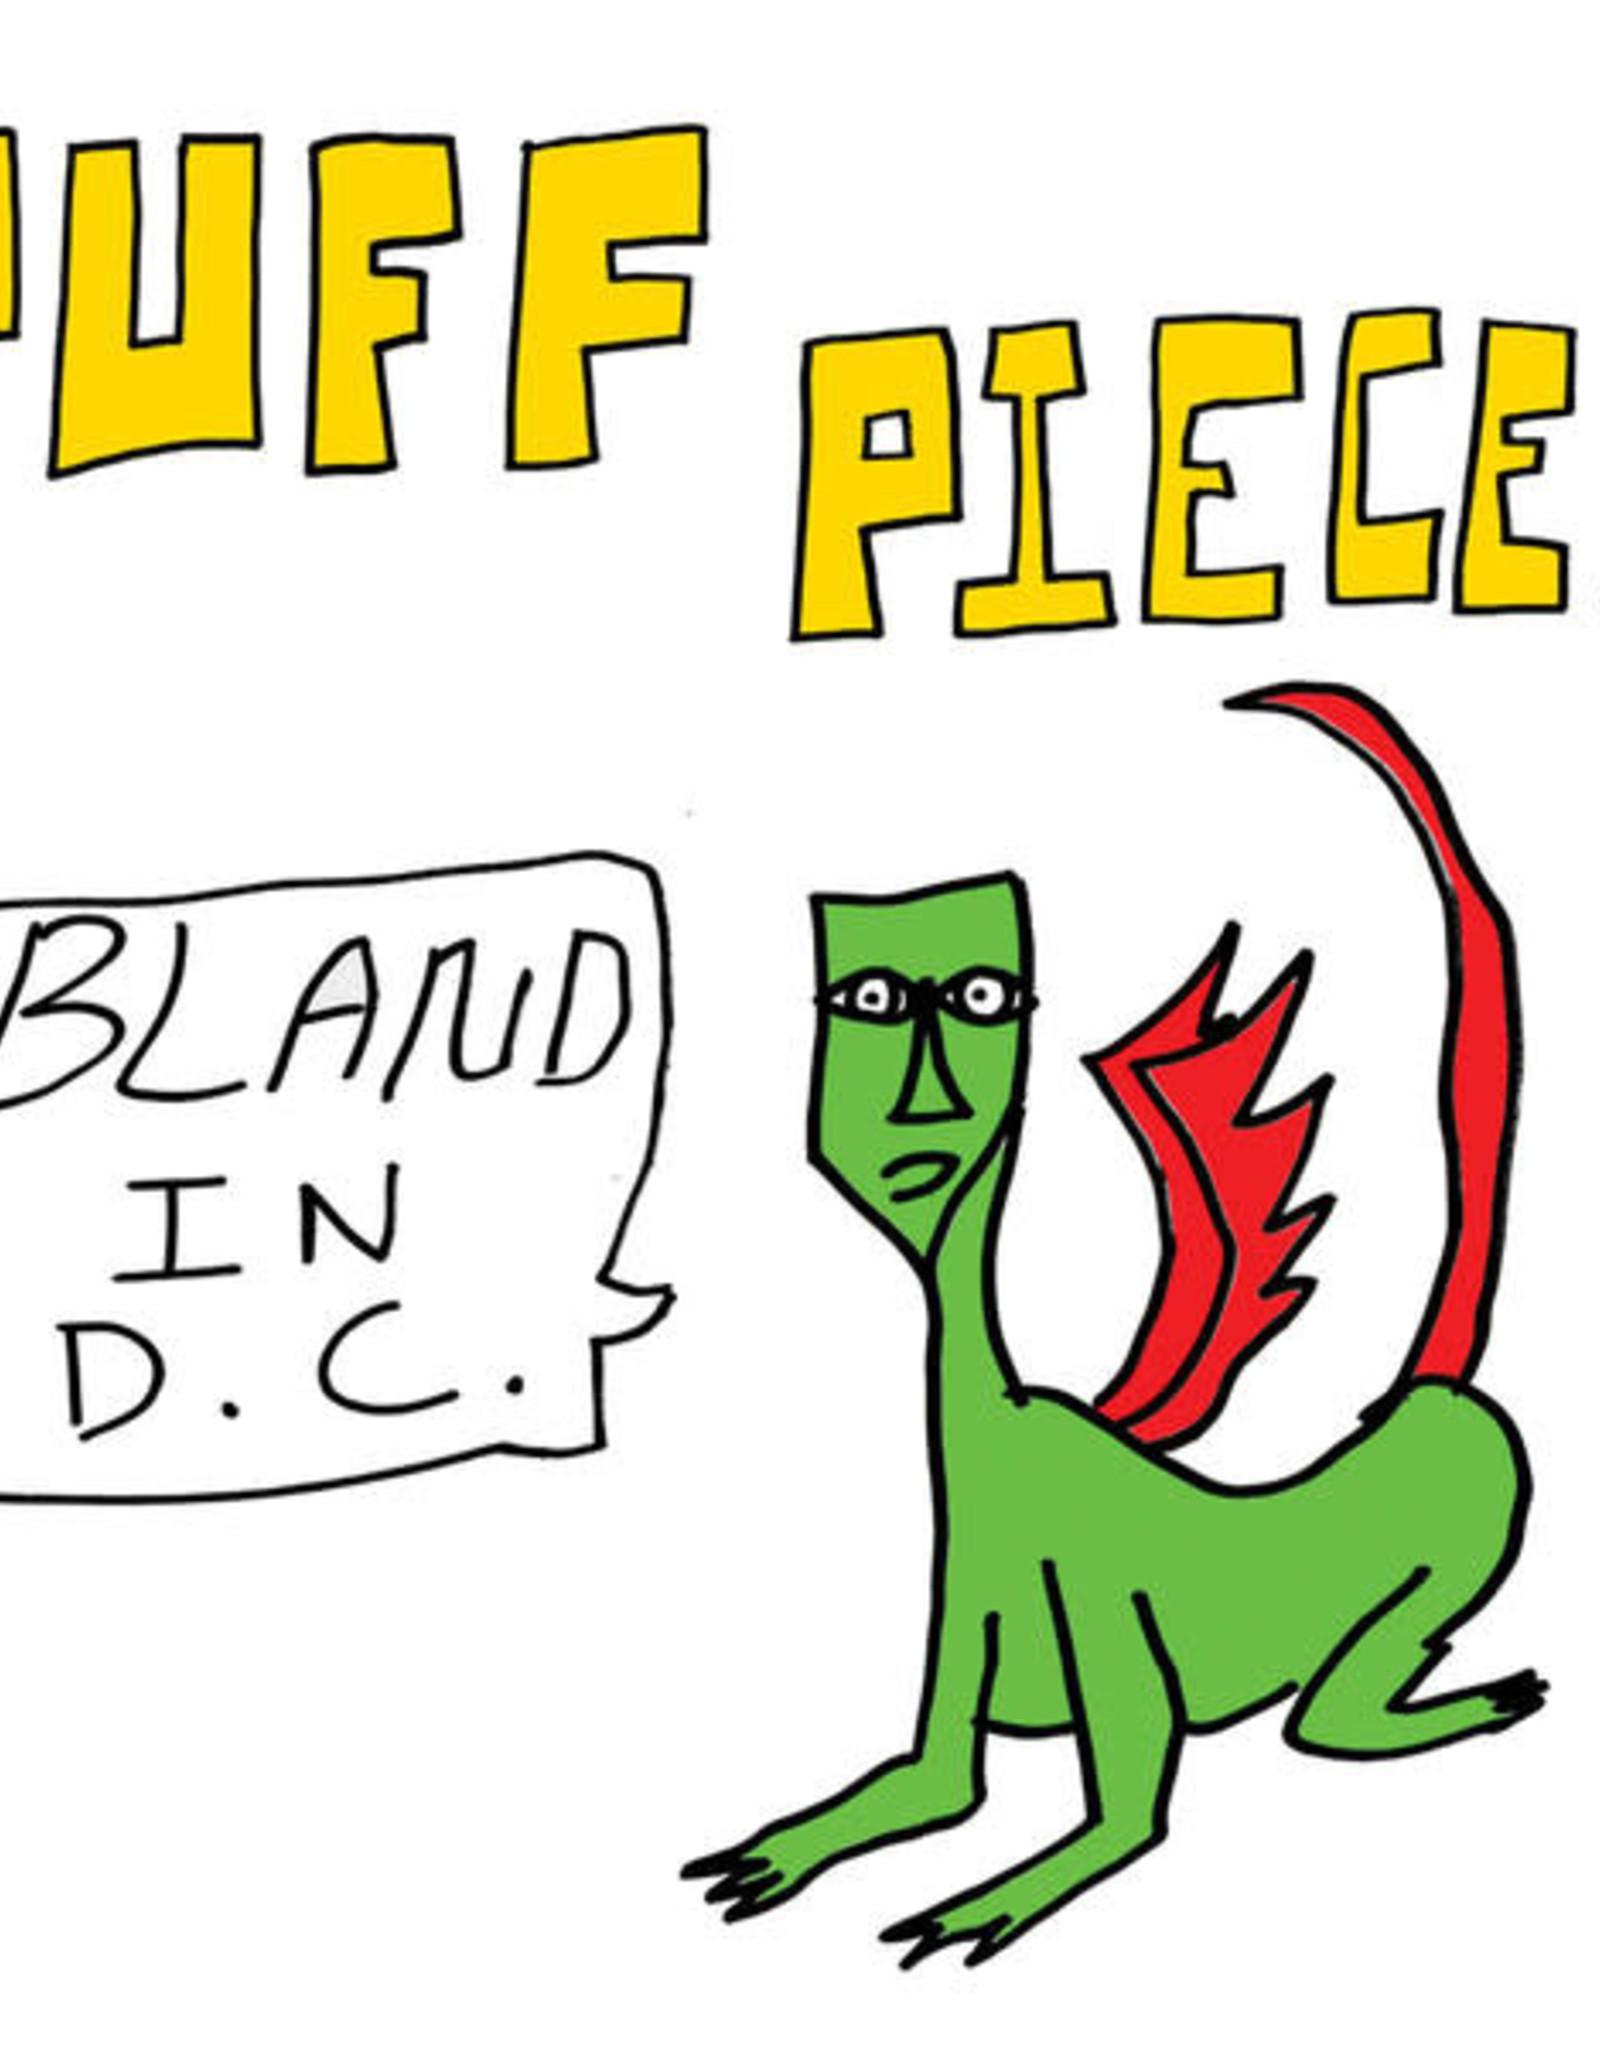 Puff Pieces -  Bland In D.C.